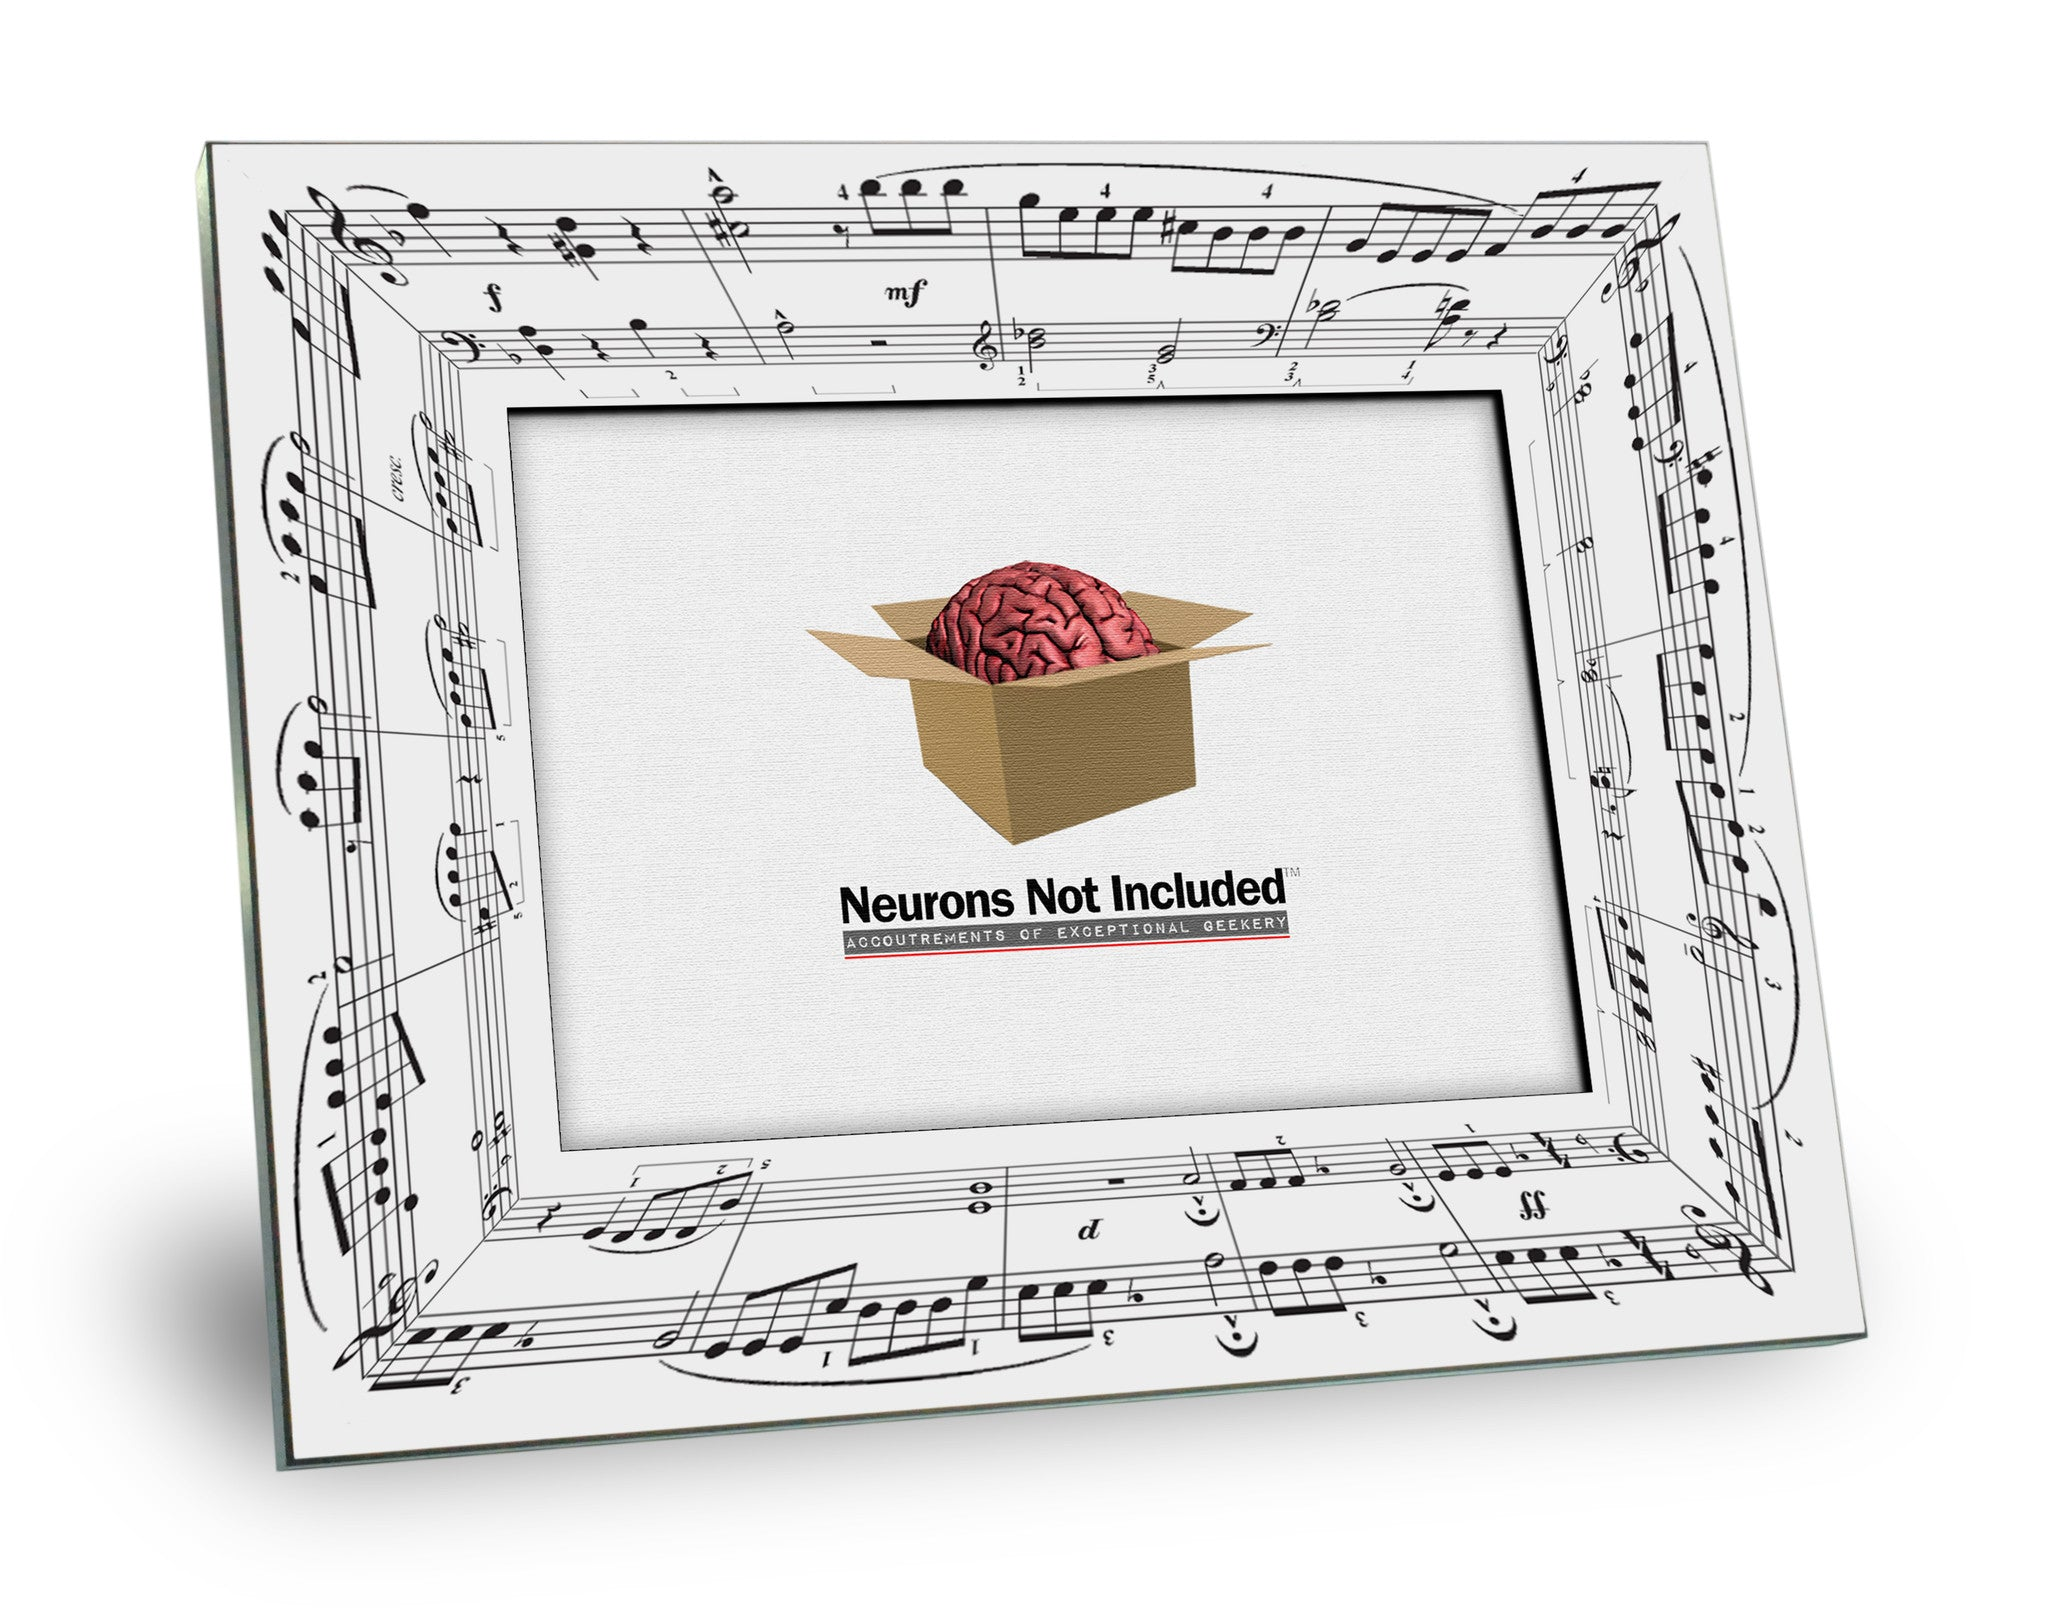 5Th Symphony beethoven's 5th symphony picture frame – neurons not included™